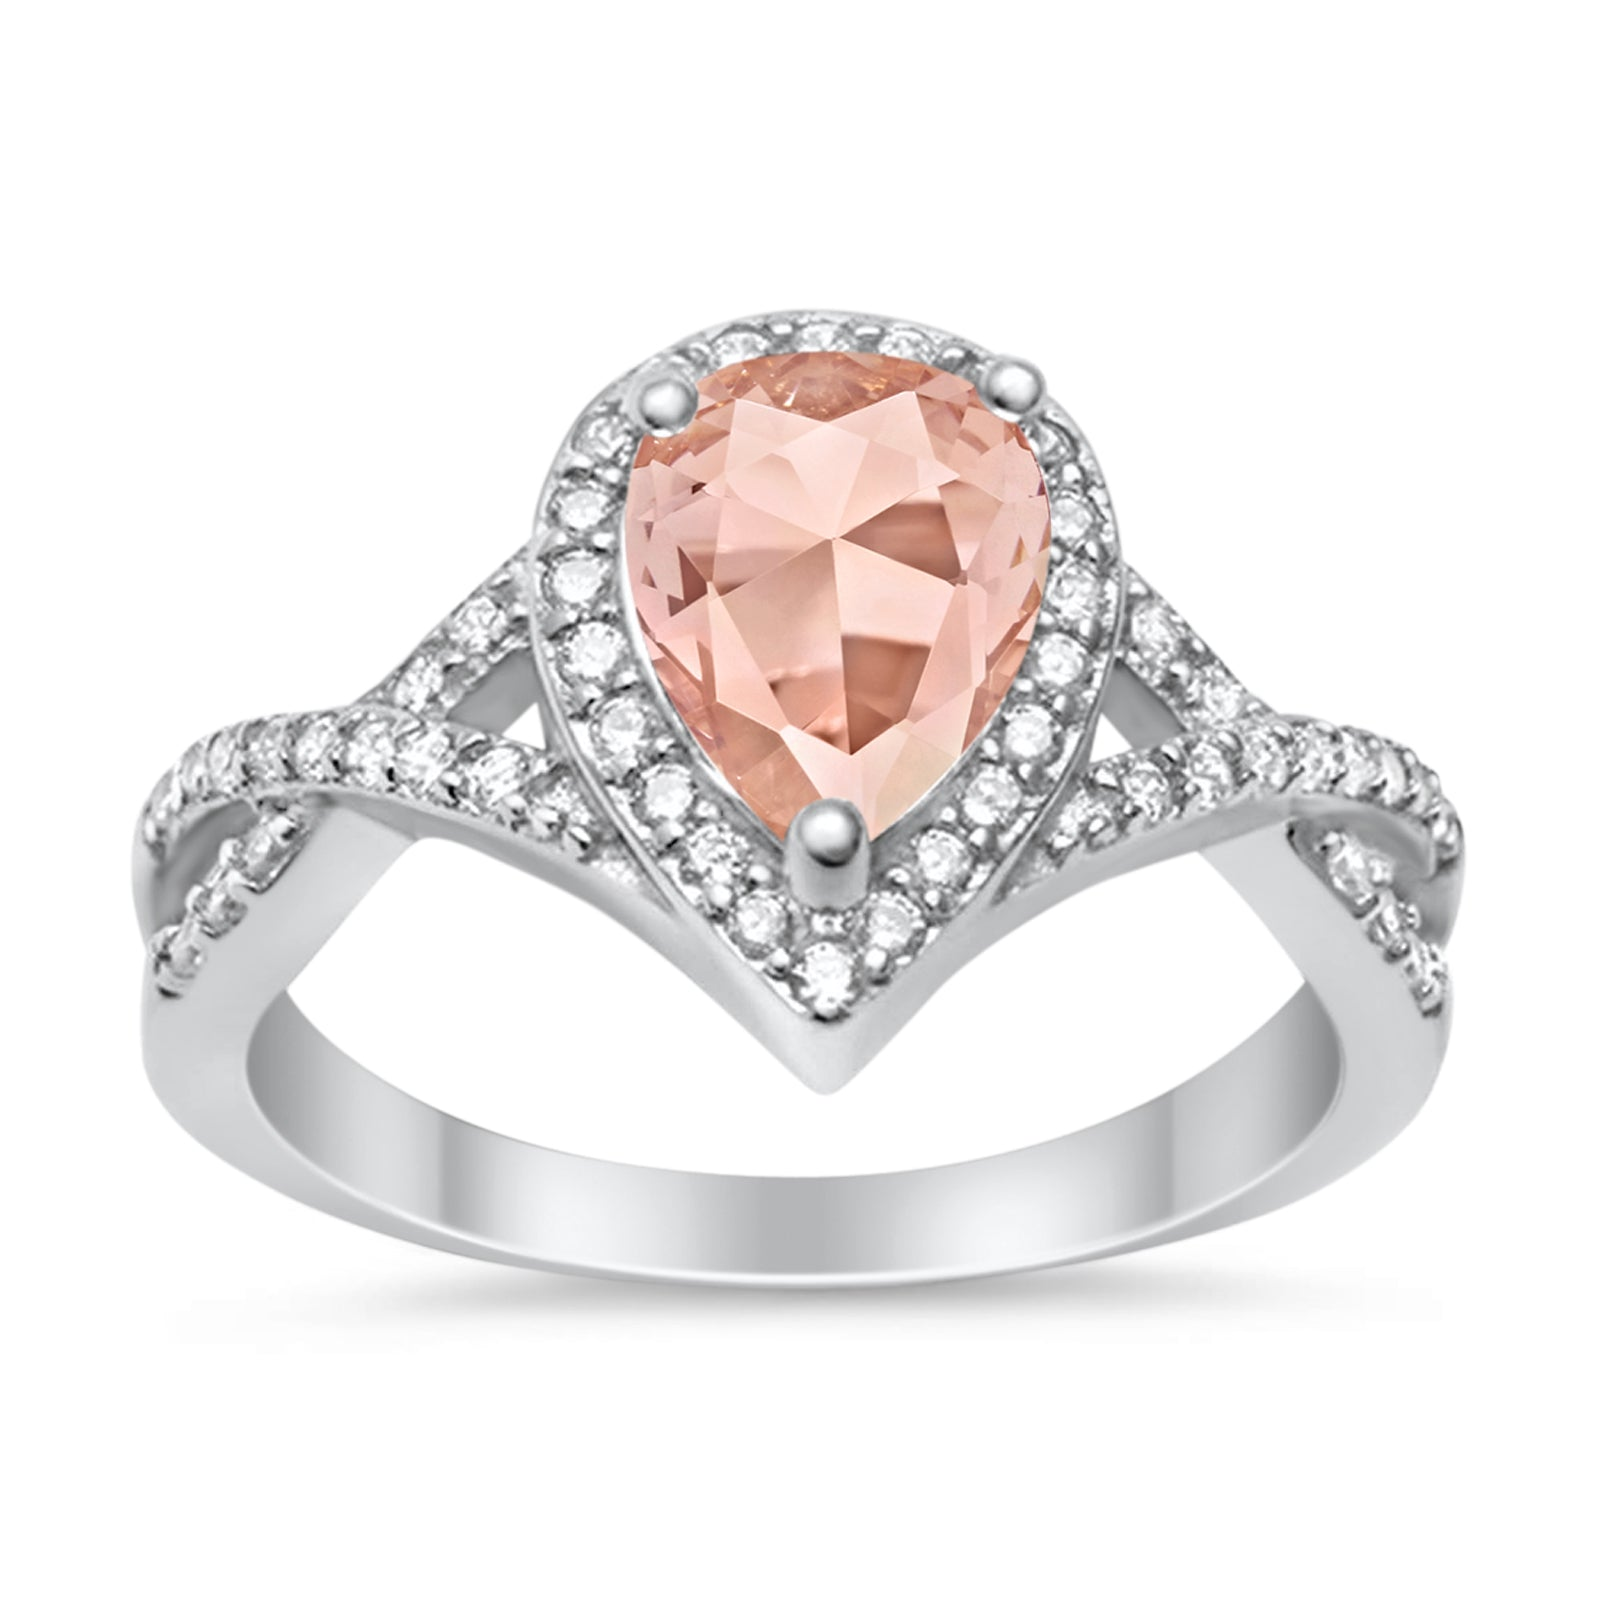 Teardrop Wedding Promise Ring Infinity Round Simulated Morganite CZ 925 Sterling Silver